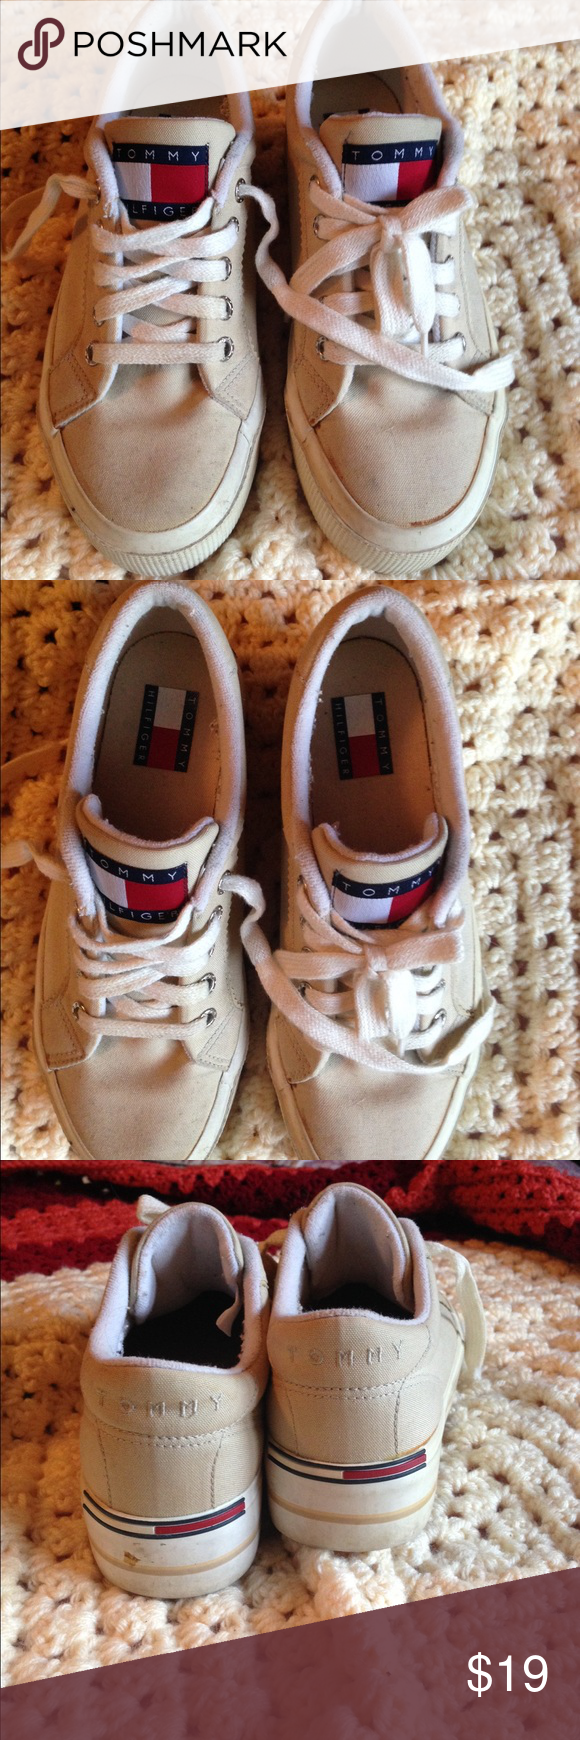 Tommy Hilfiger sneakers  worn few time Tommy Hilfiger sneakers worn few time and have a lot of life left , so clean . Tommy Hilfiger Shoes Sneakers